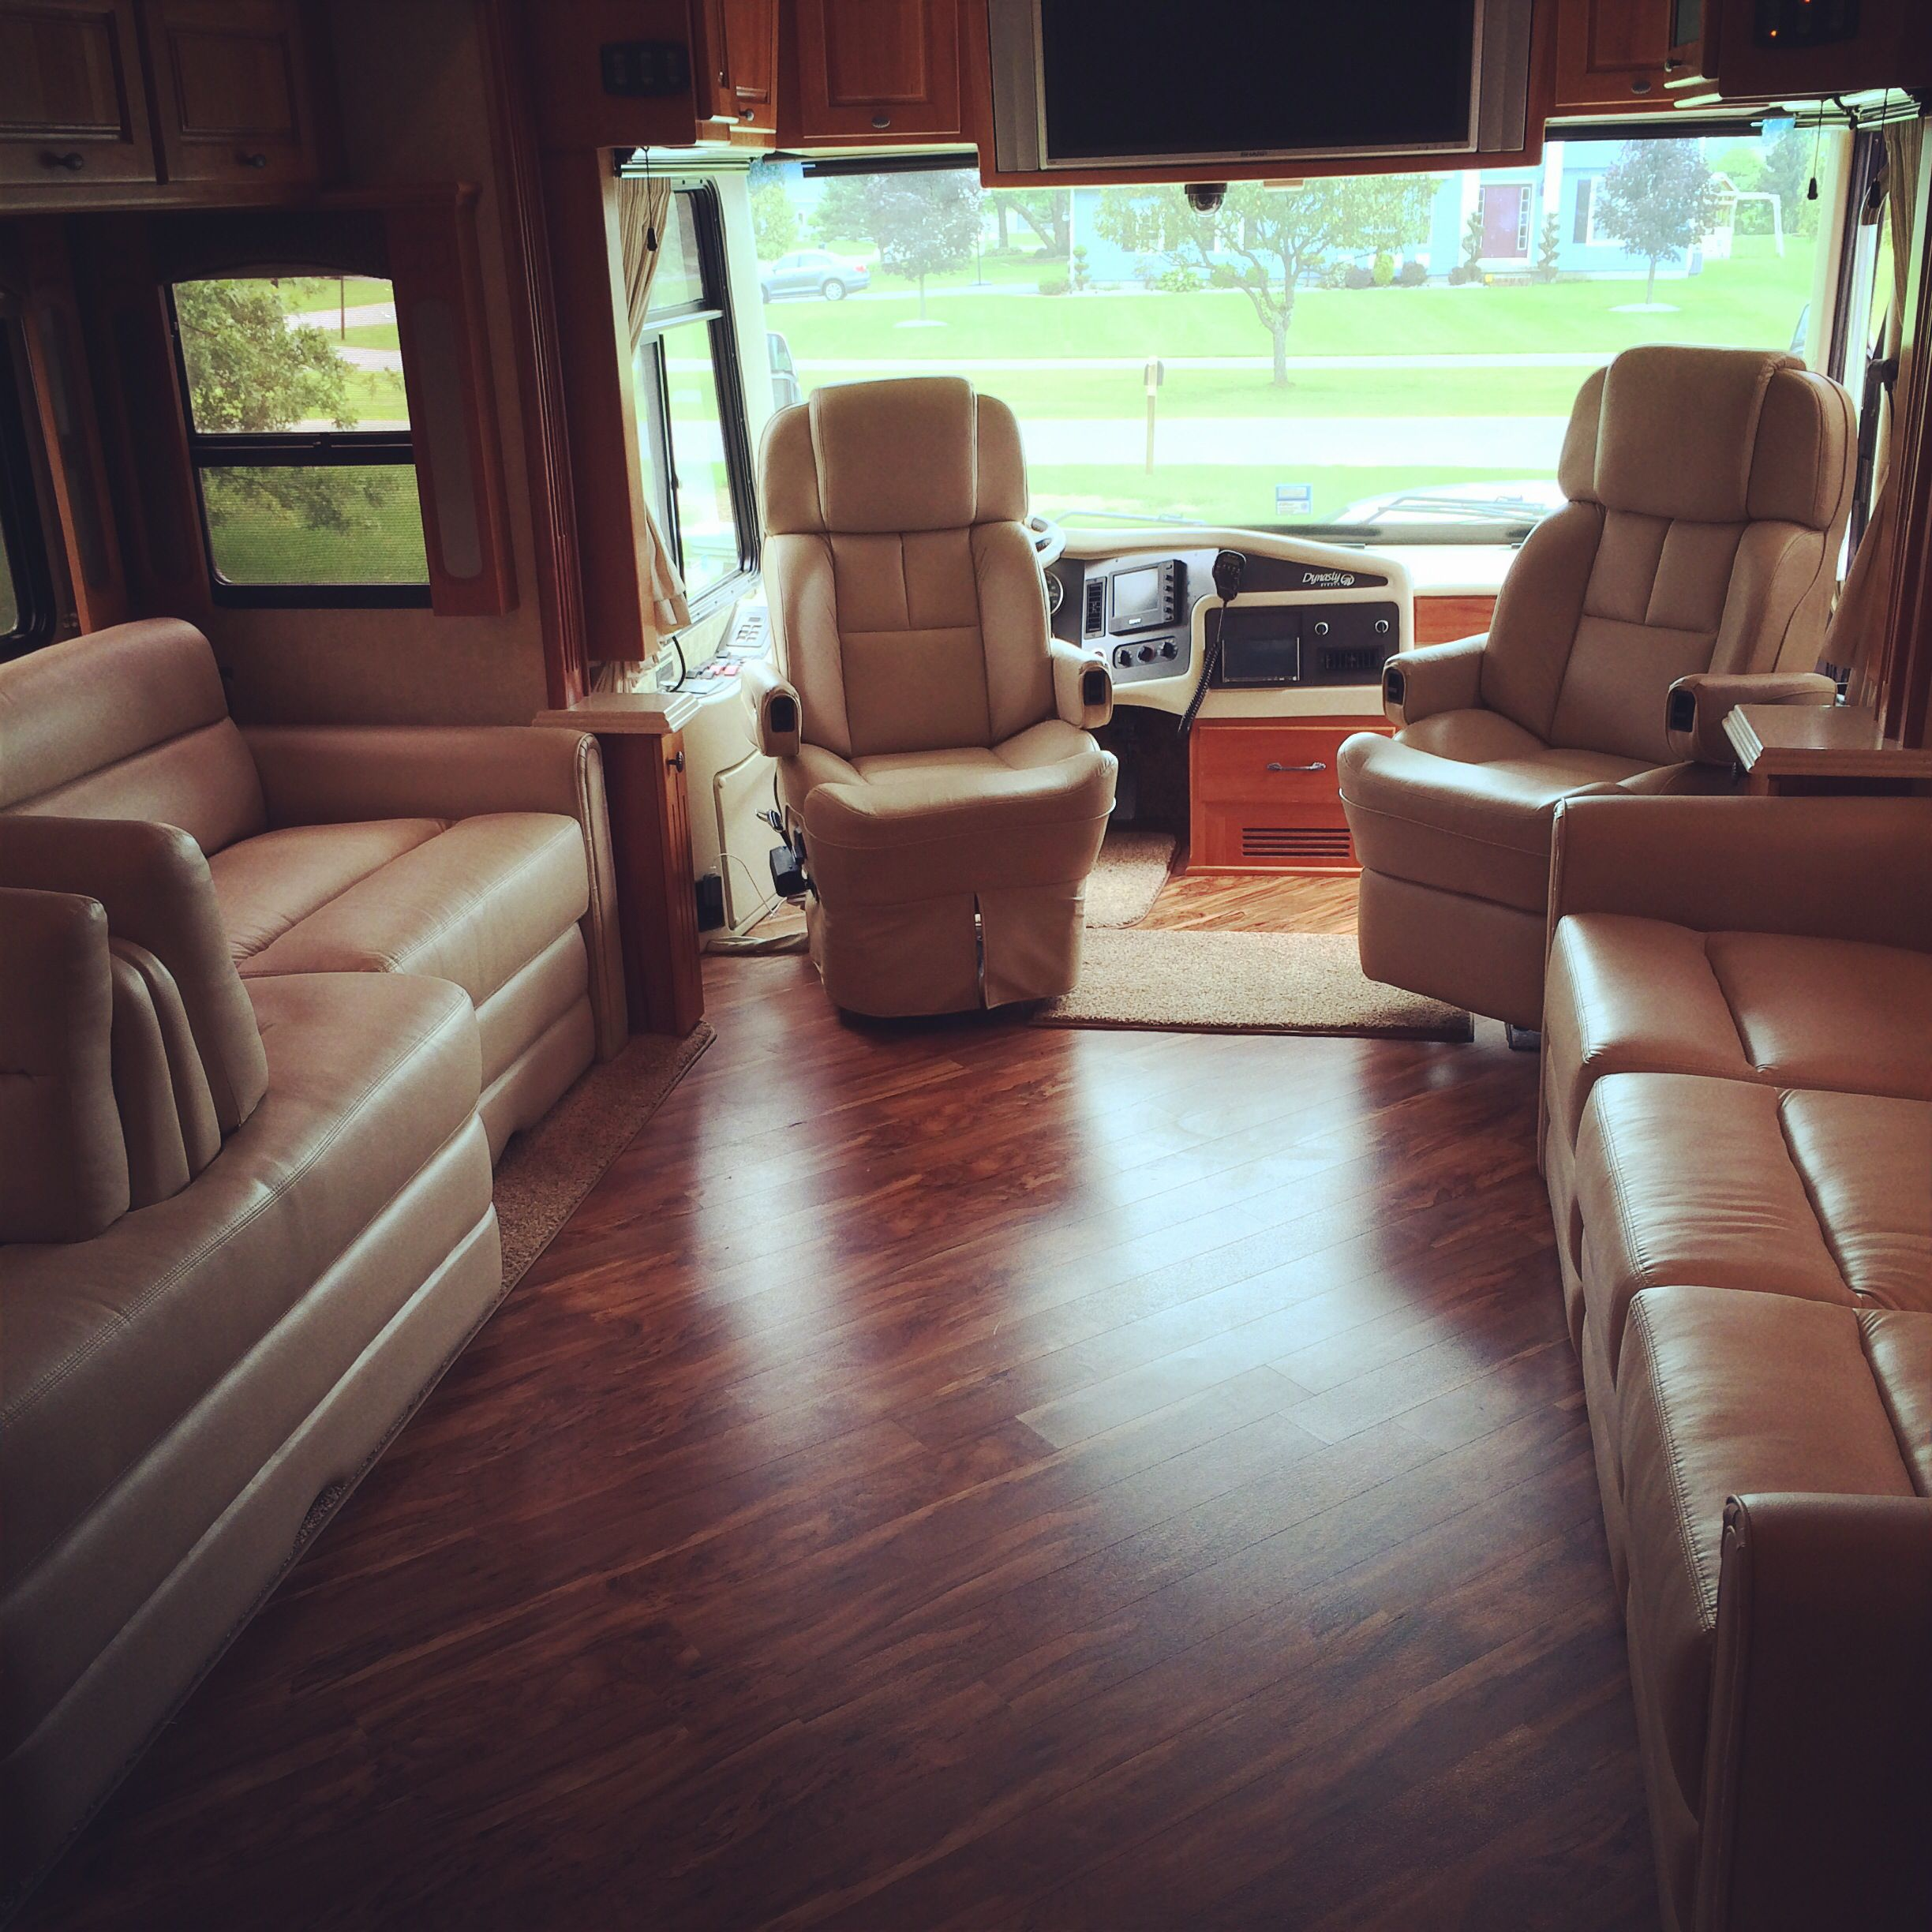 A new set of Rv Captains Chairs for a 2008 Monaco Dynasty They